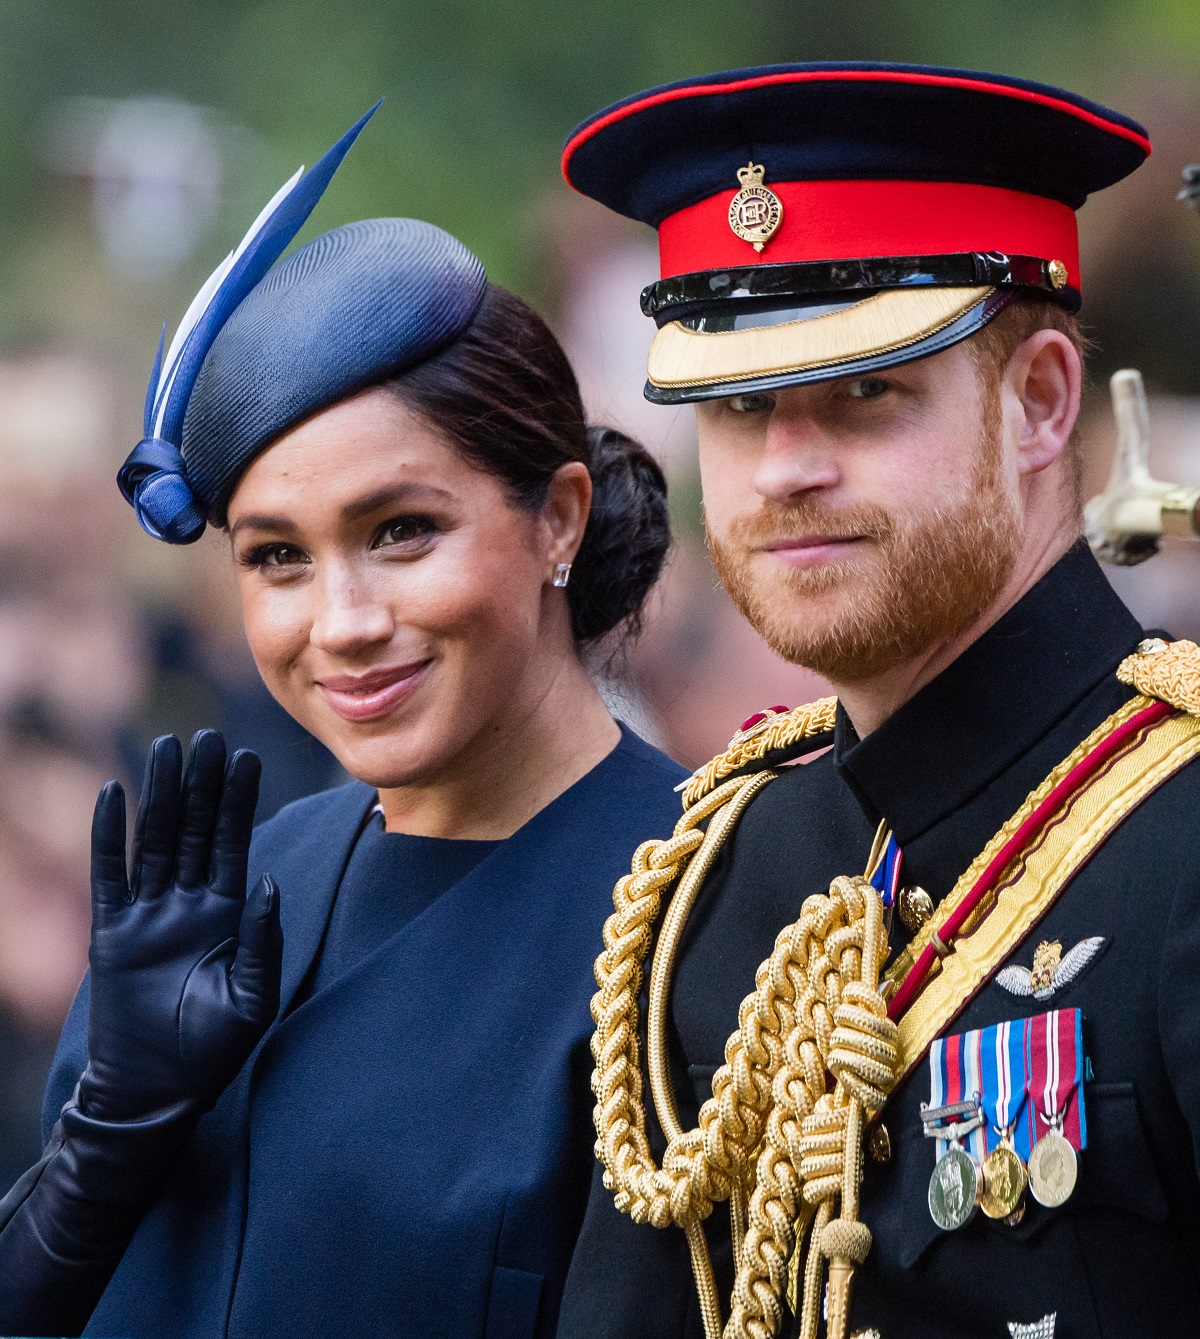 Prince Harry, Duke of Sussex and Meghan, Duchess of Sussex, ride by carriage down the Mall during Trooping The Colour, the Queen's annual birthday parade, on June 08, 2019 in London, England